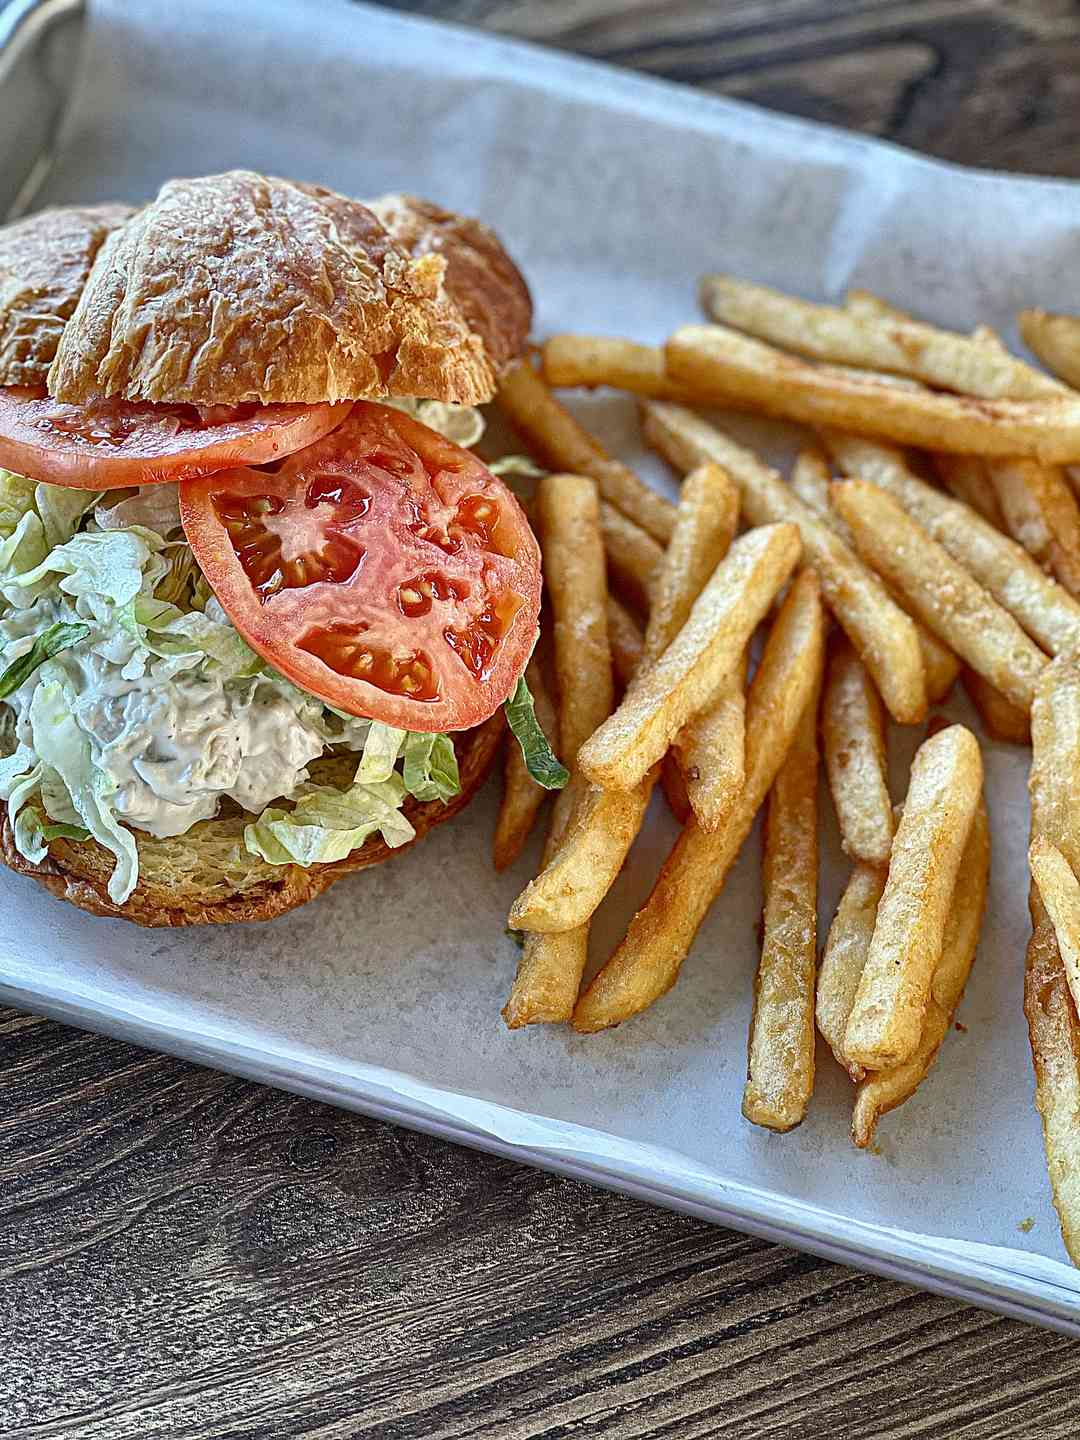 Chicken or Tuna Salad Sandwich